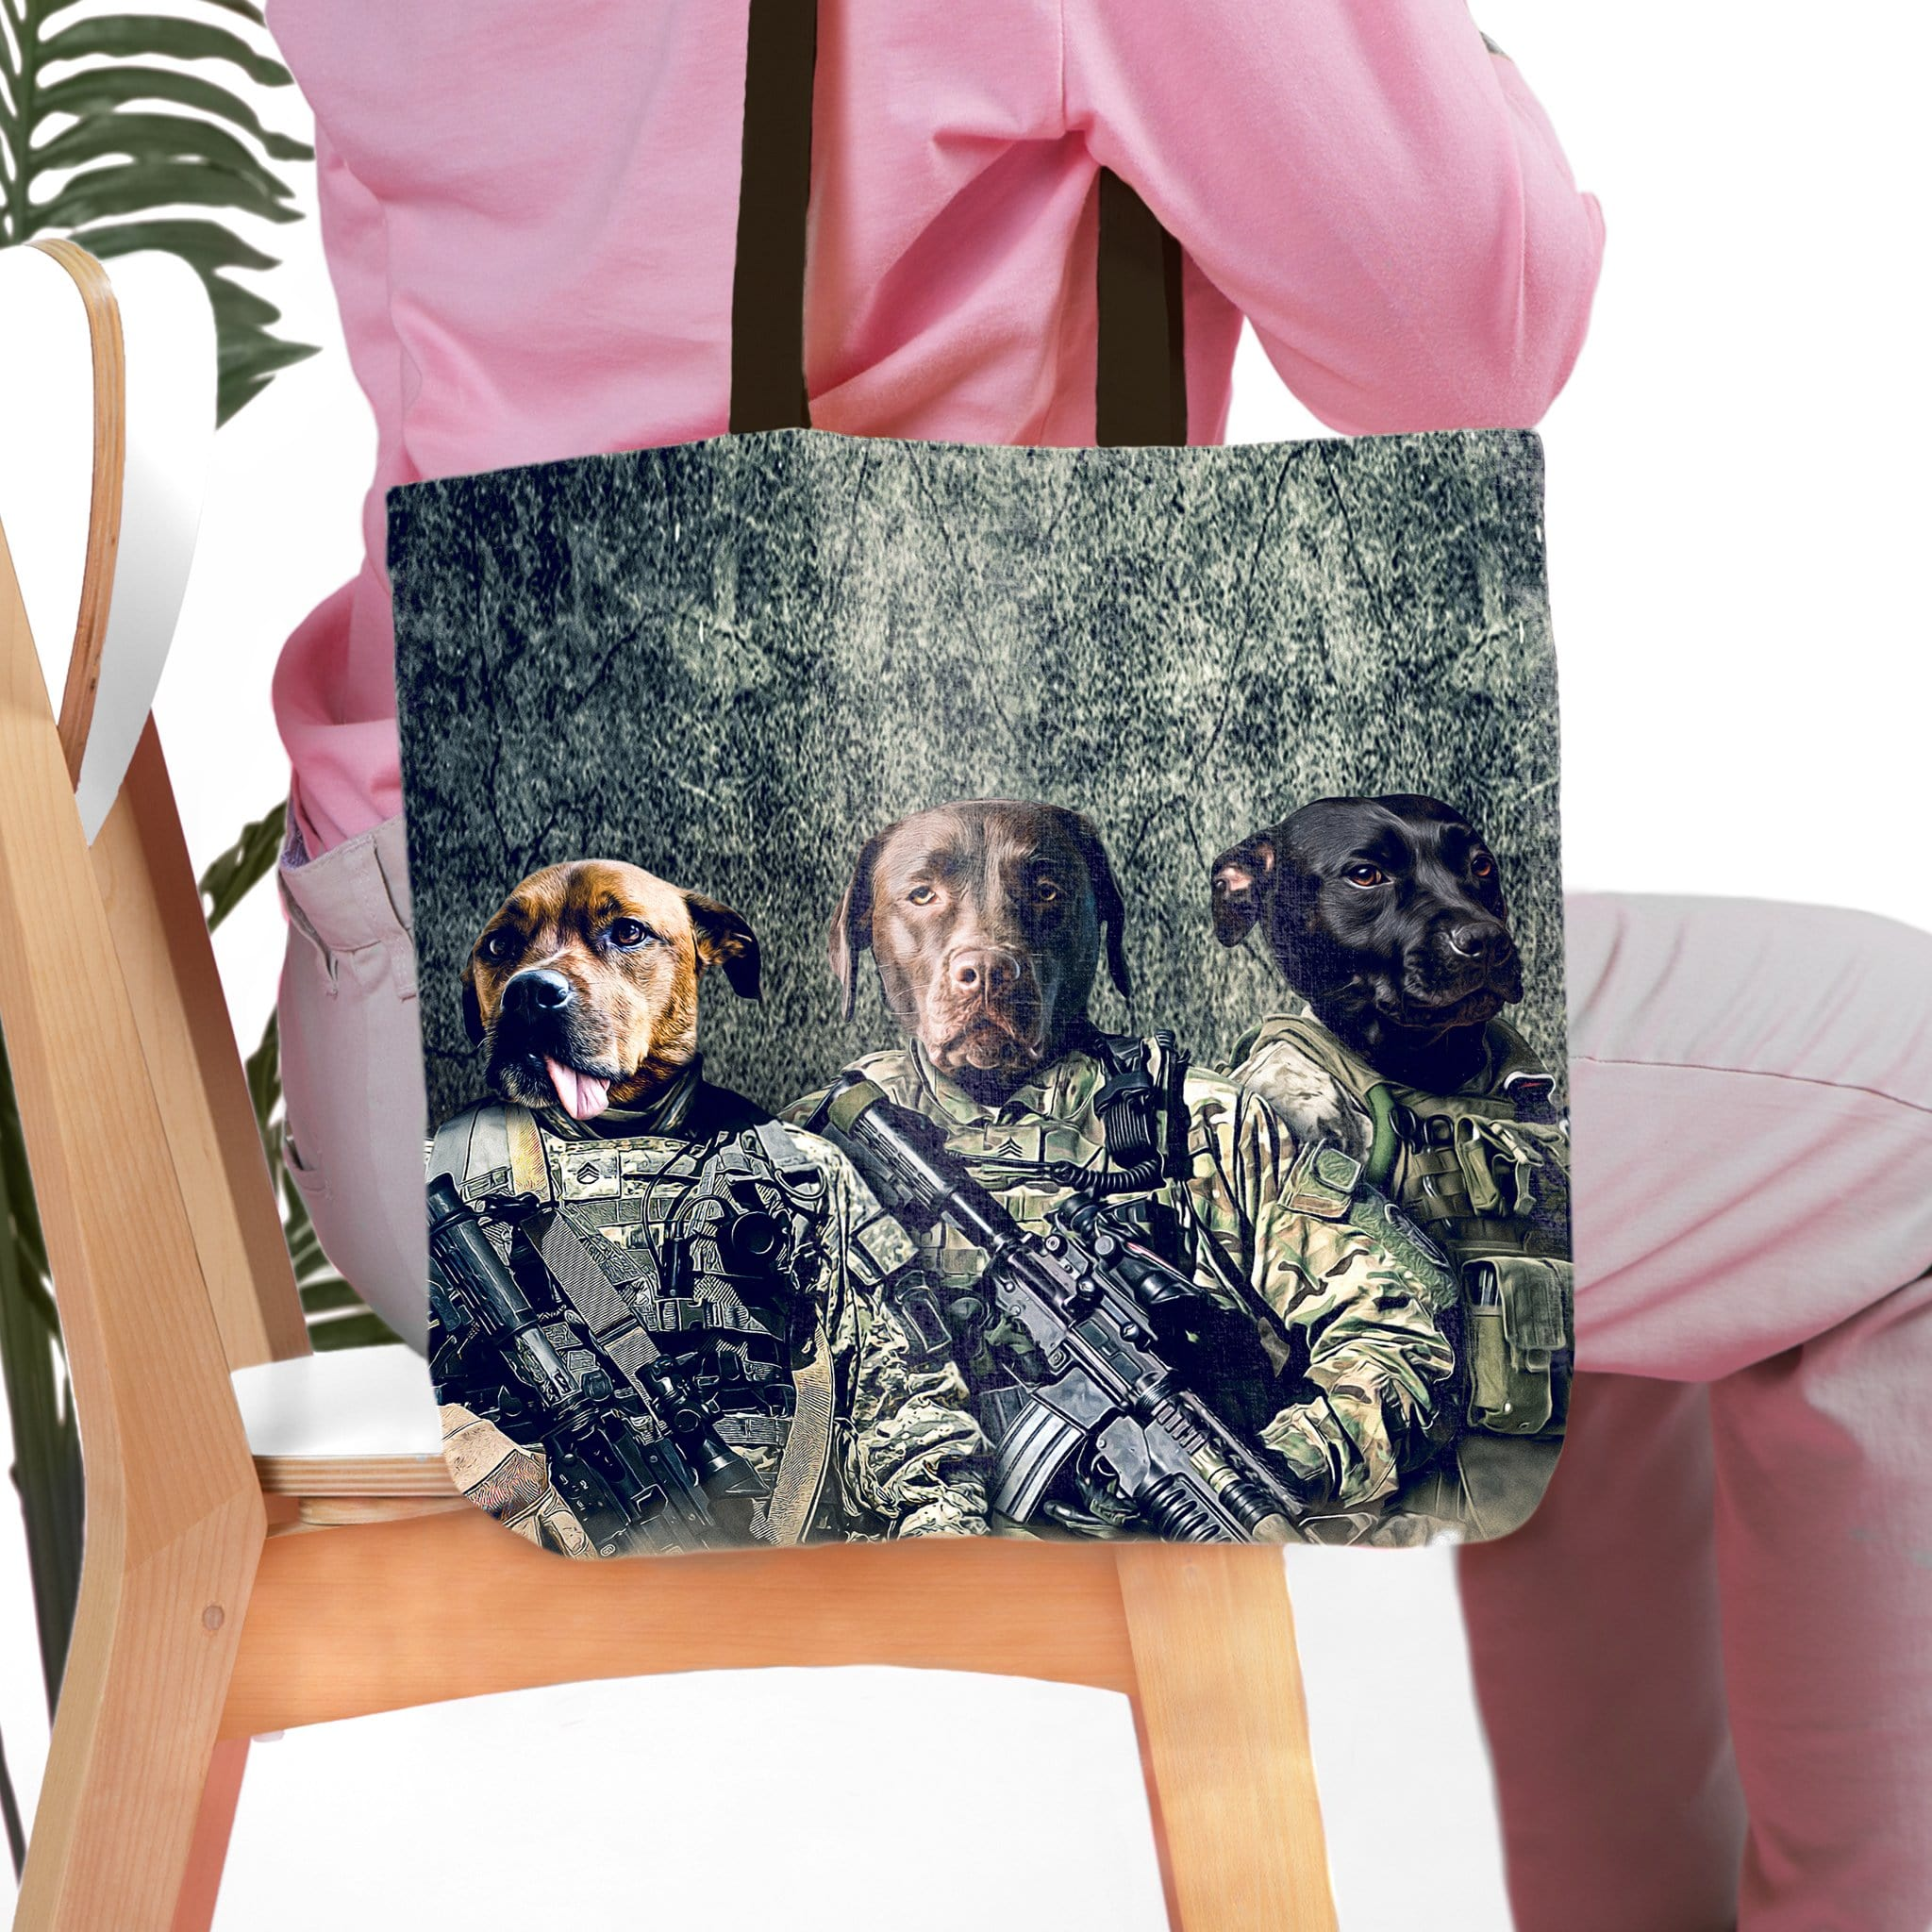 'The Army Veterans' Personalized 3 Pet Tote Bag